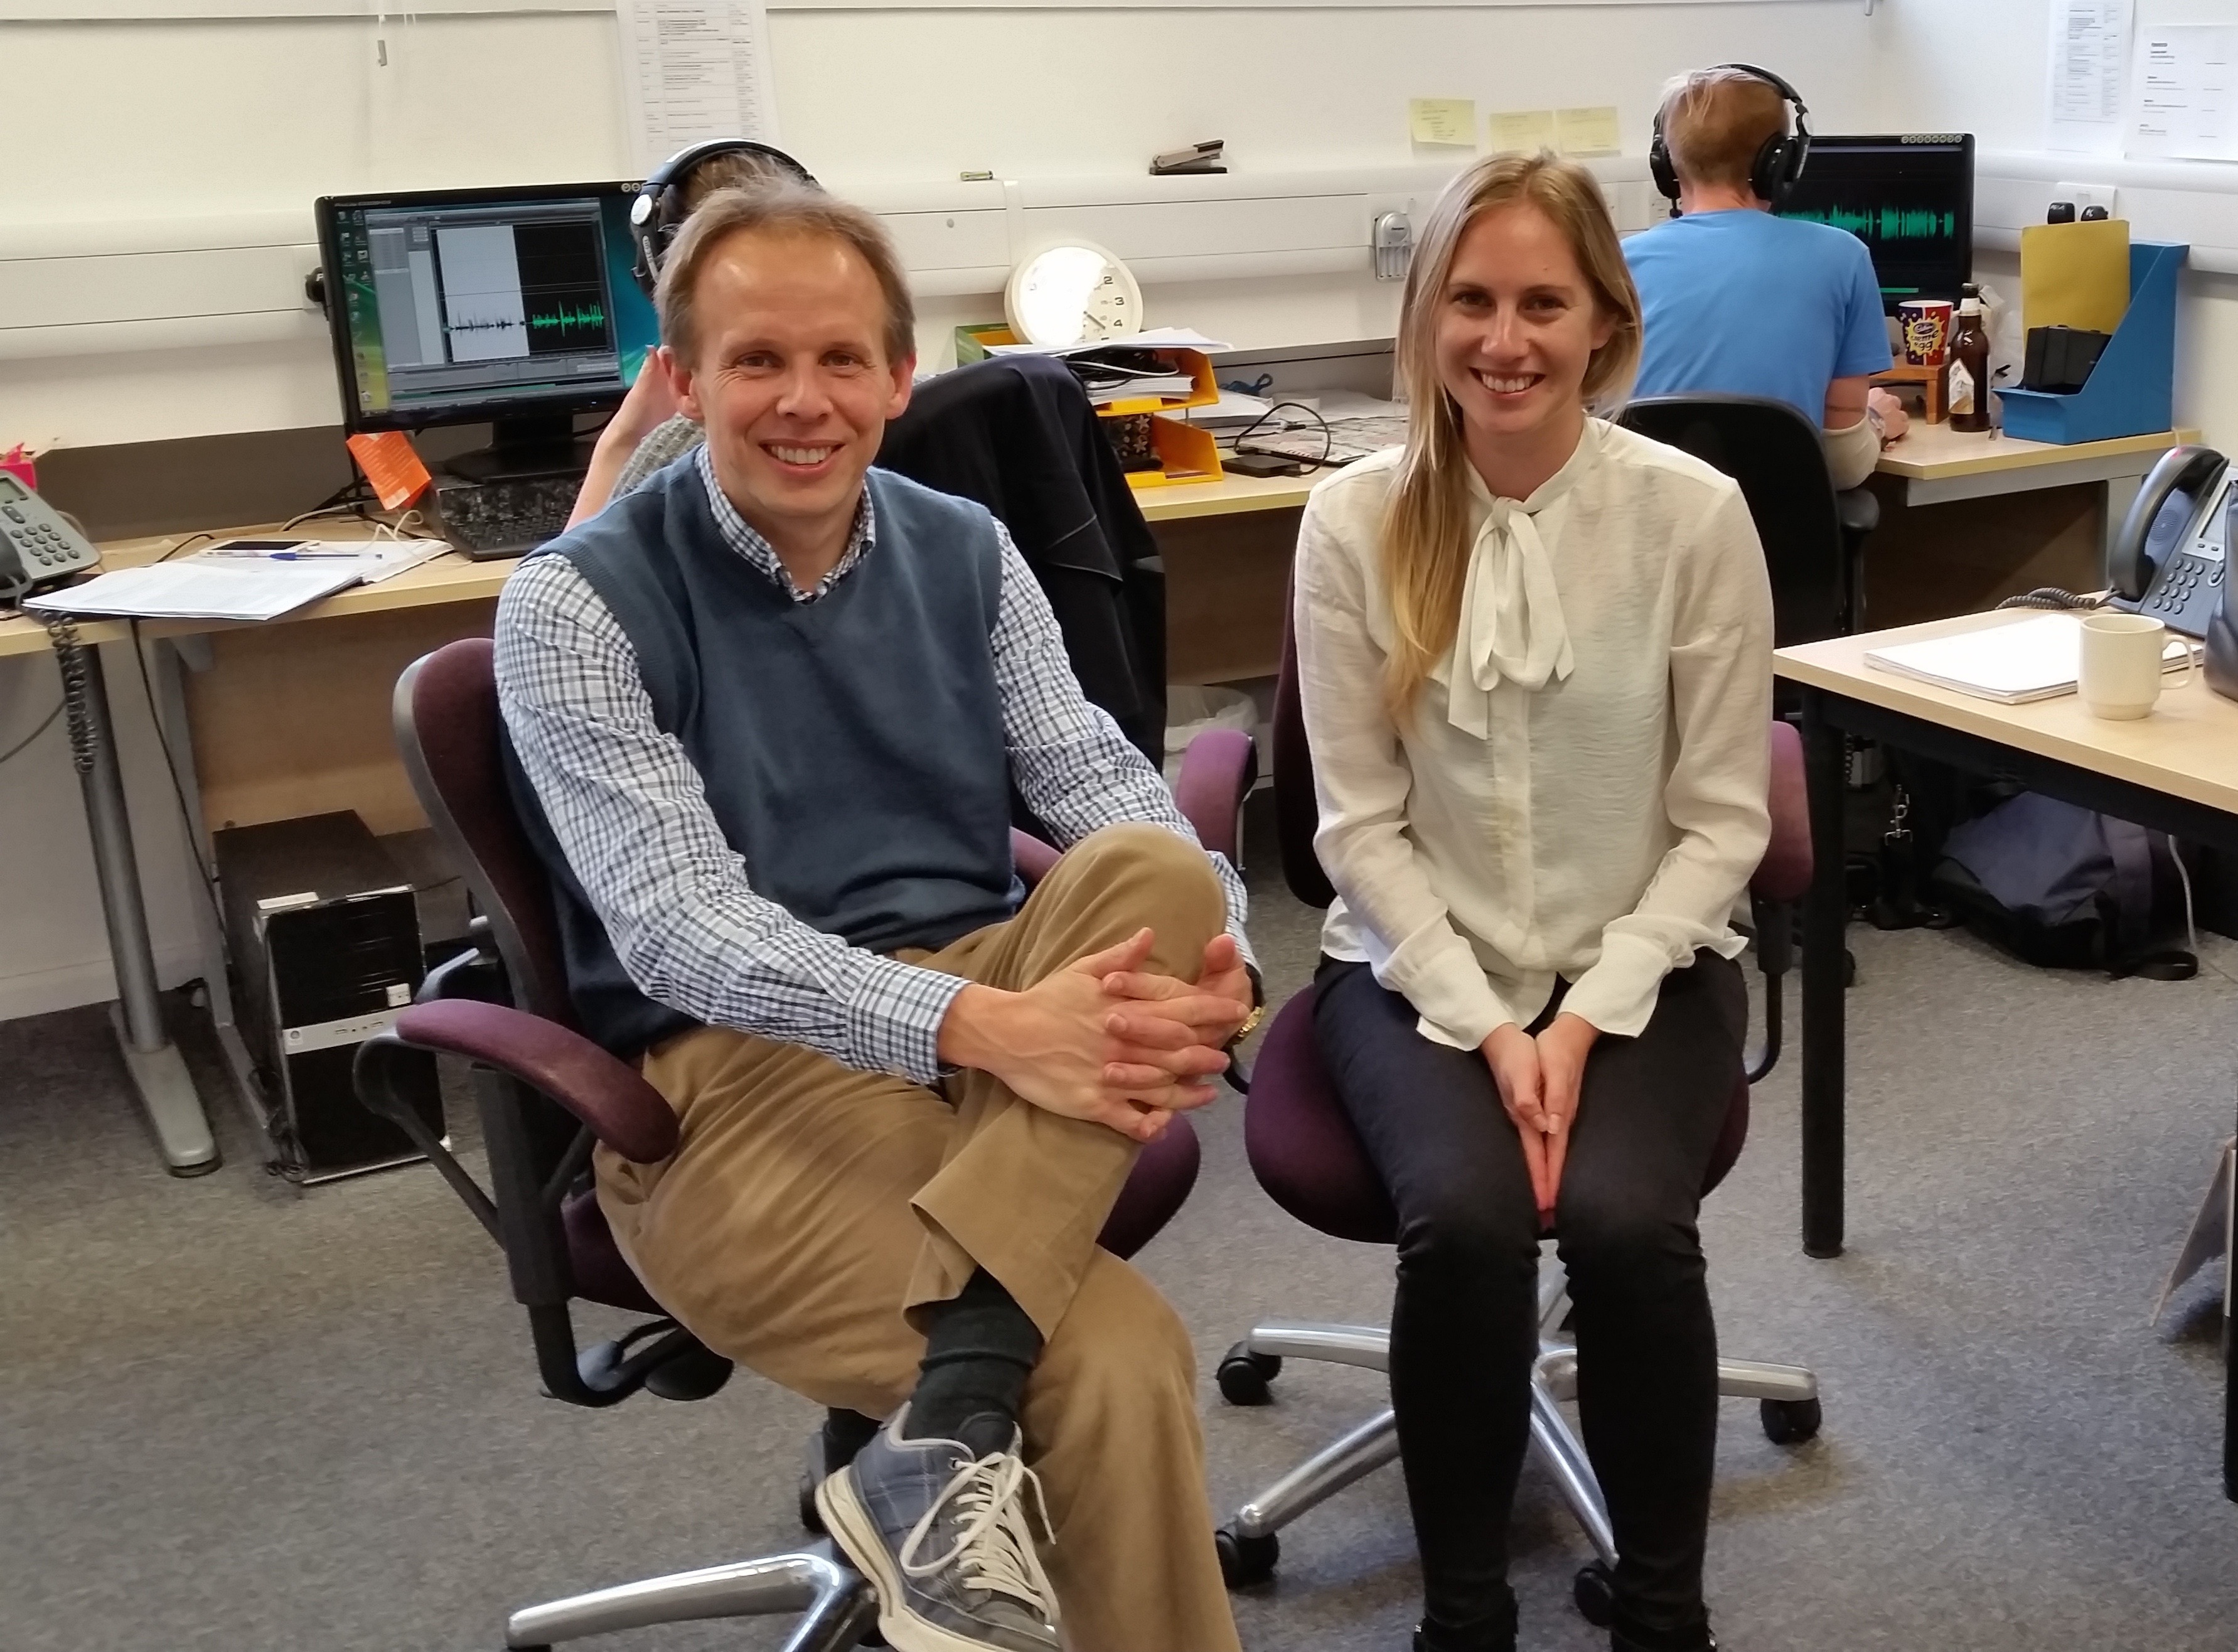 Chris and Jacinta in Cambridge